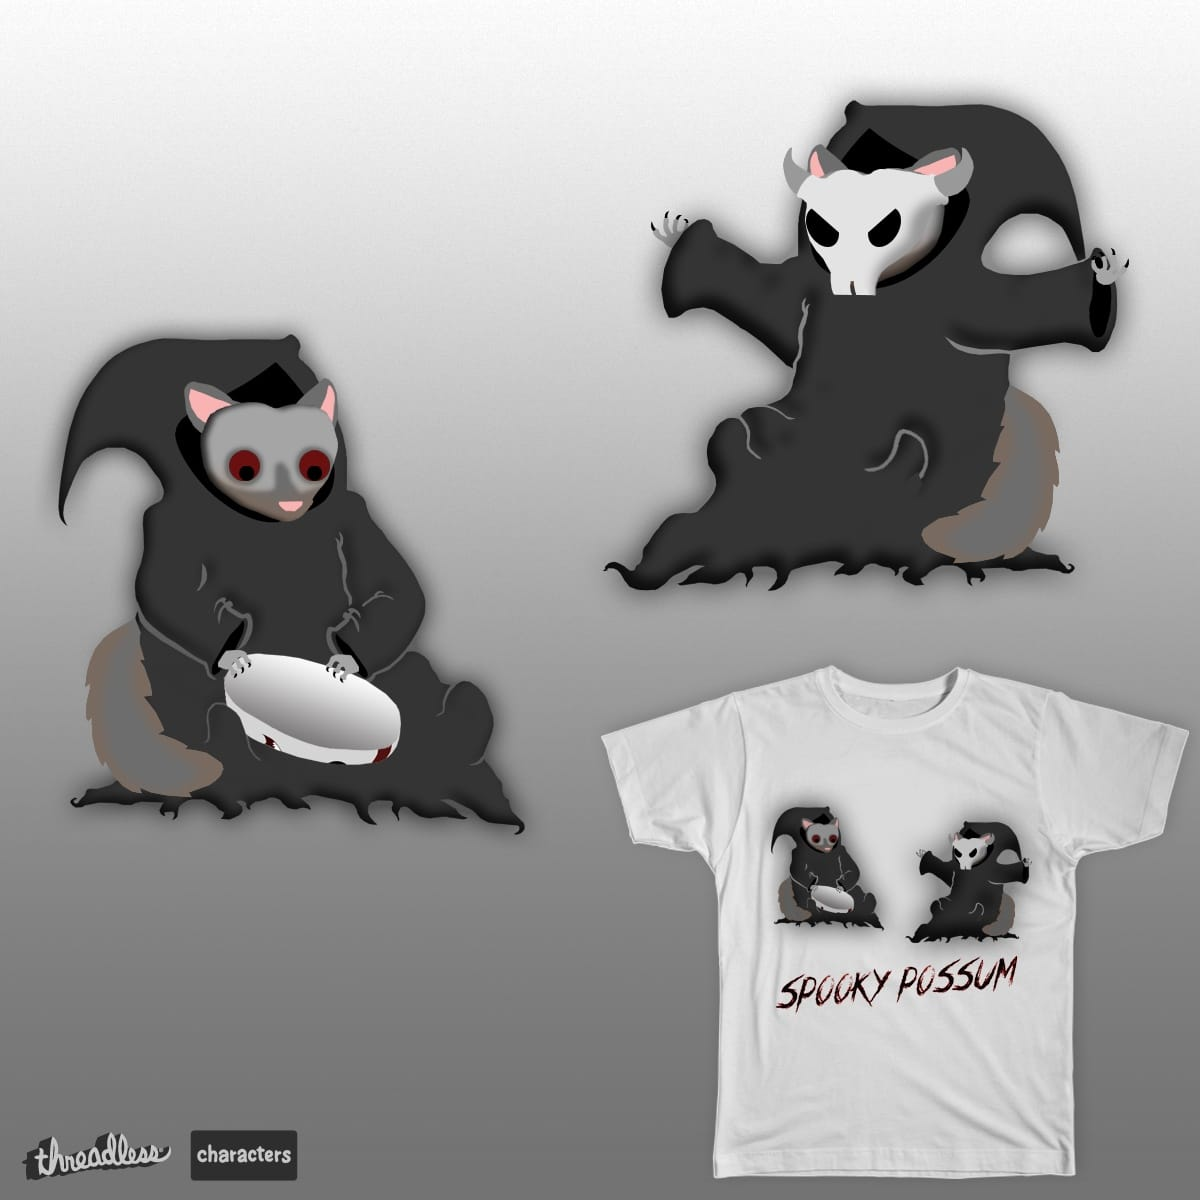 Spooky Possum by meteoric on Threadless